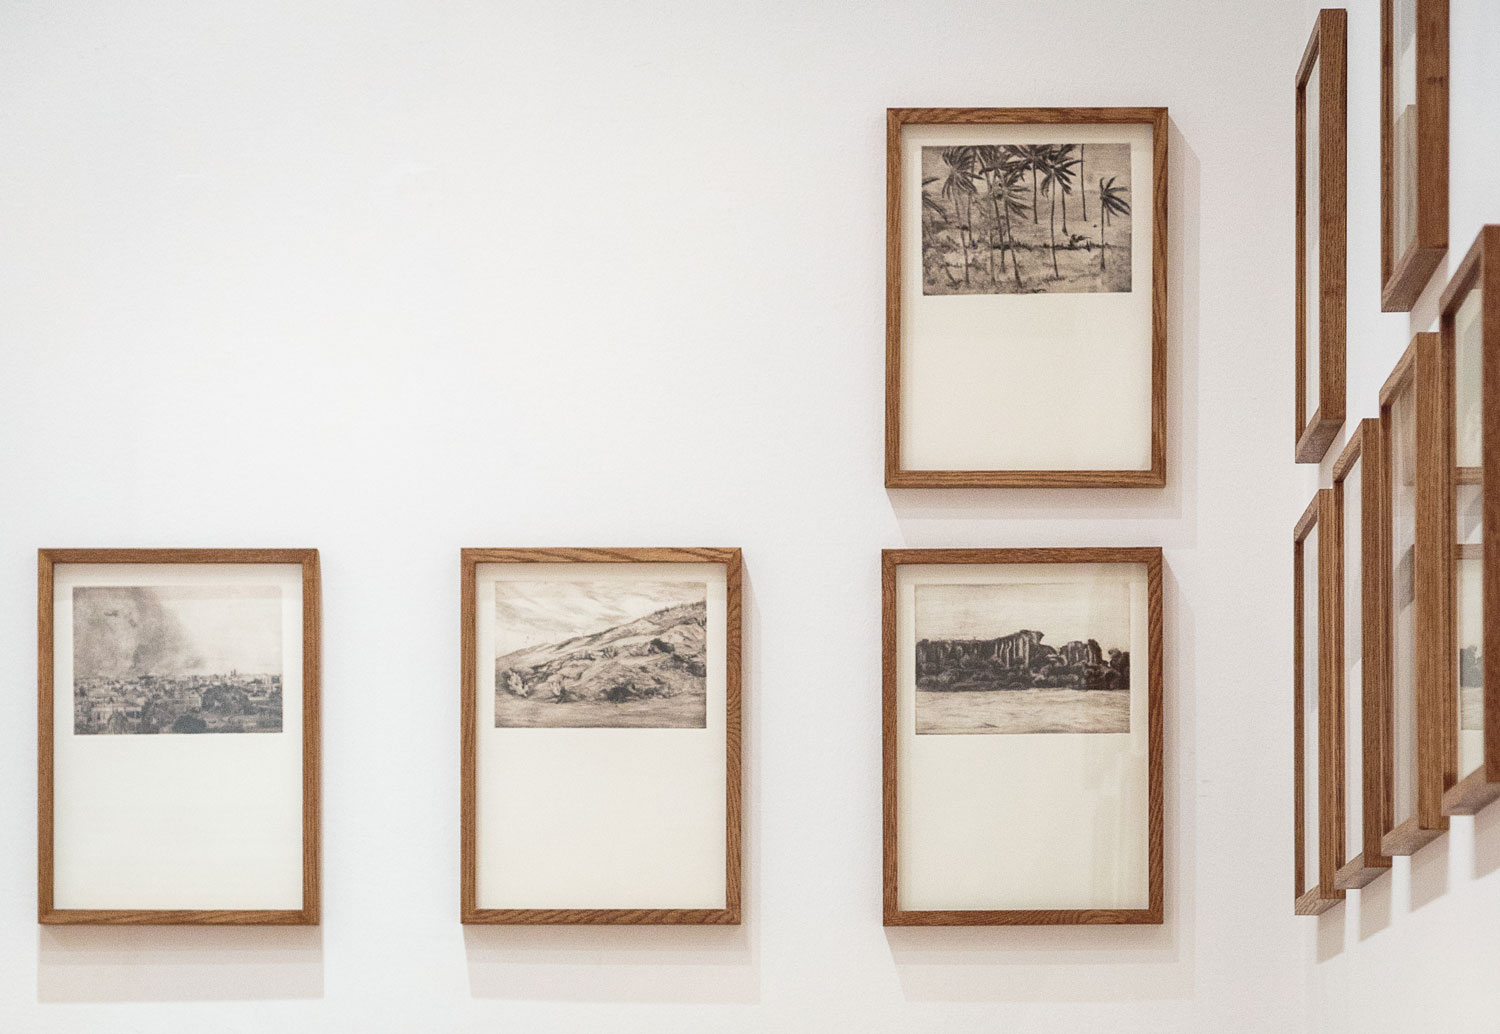 Alessandro Piangiamore | Tutto il vento che c'è (from left to right, starting at the top right: Elephanta, Haboob, Gilavar, Gardesana) 2010-2013, etchings, cm 31x40 each.